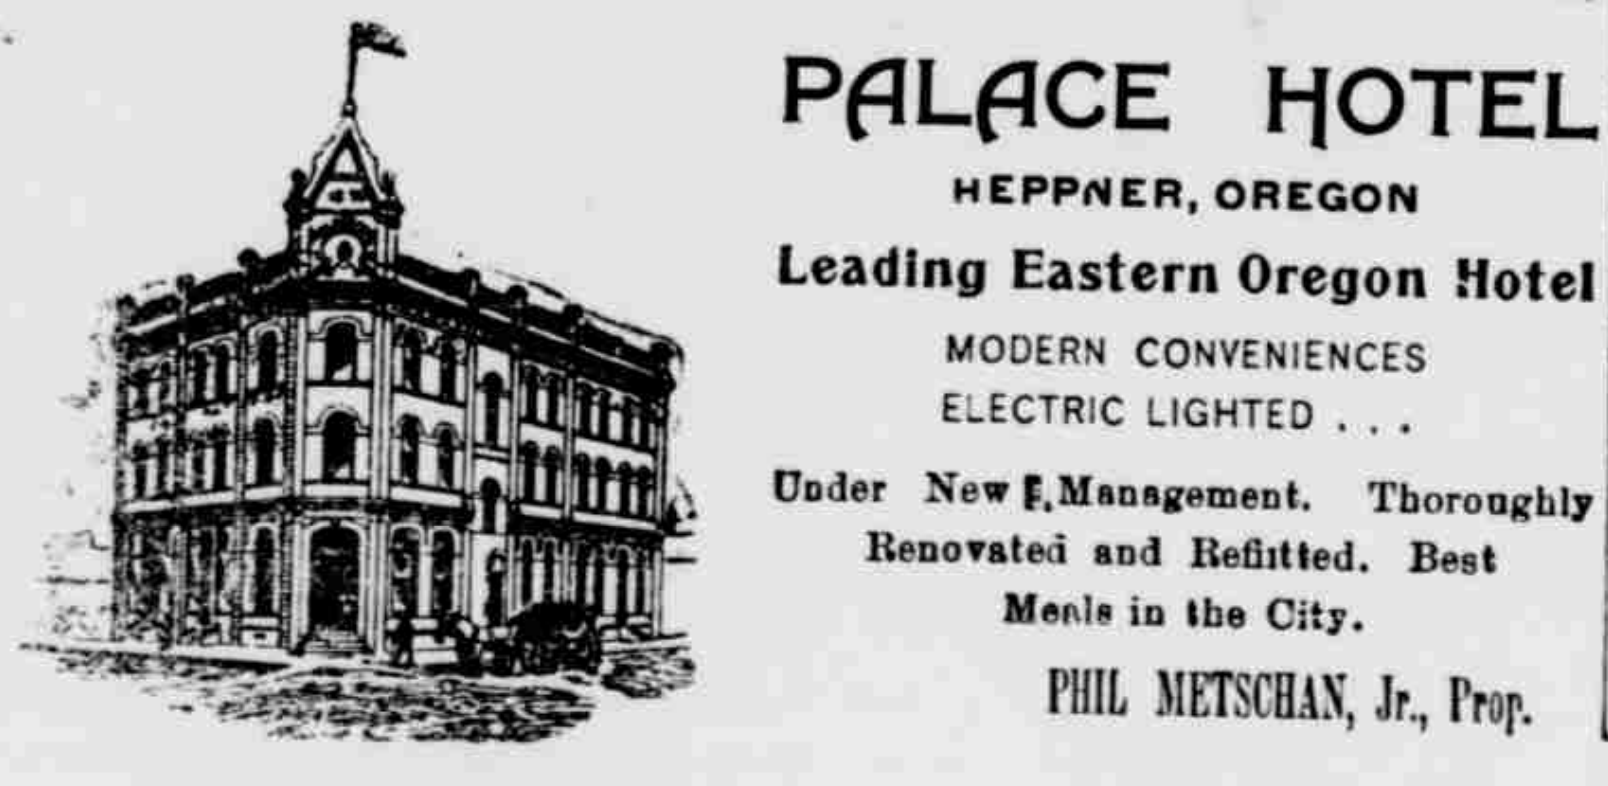 File:1904 Palace Hotel Advertisement in Heppner, Oregon